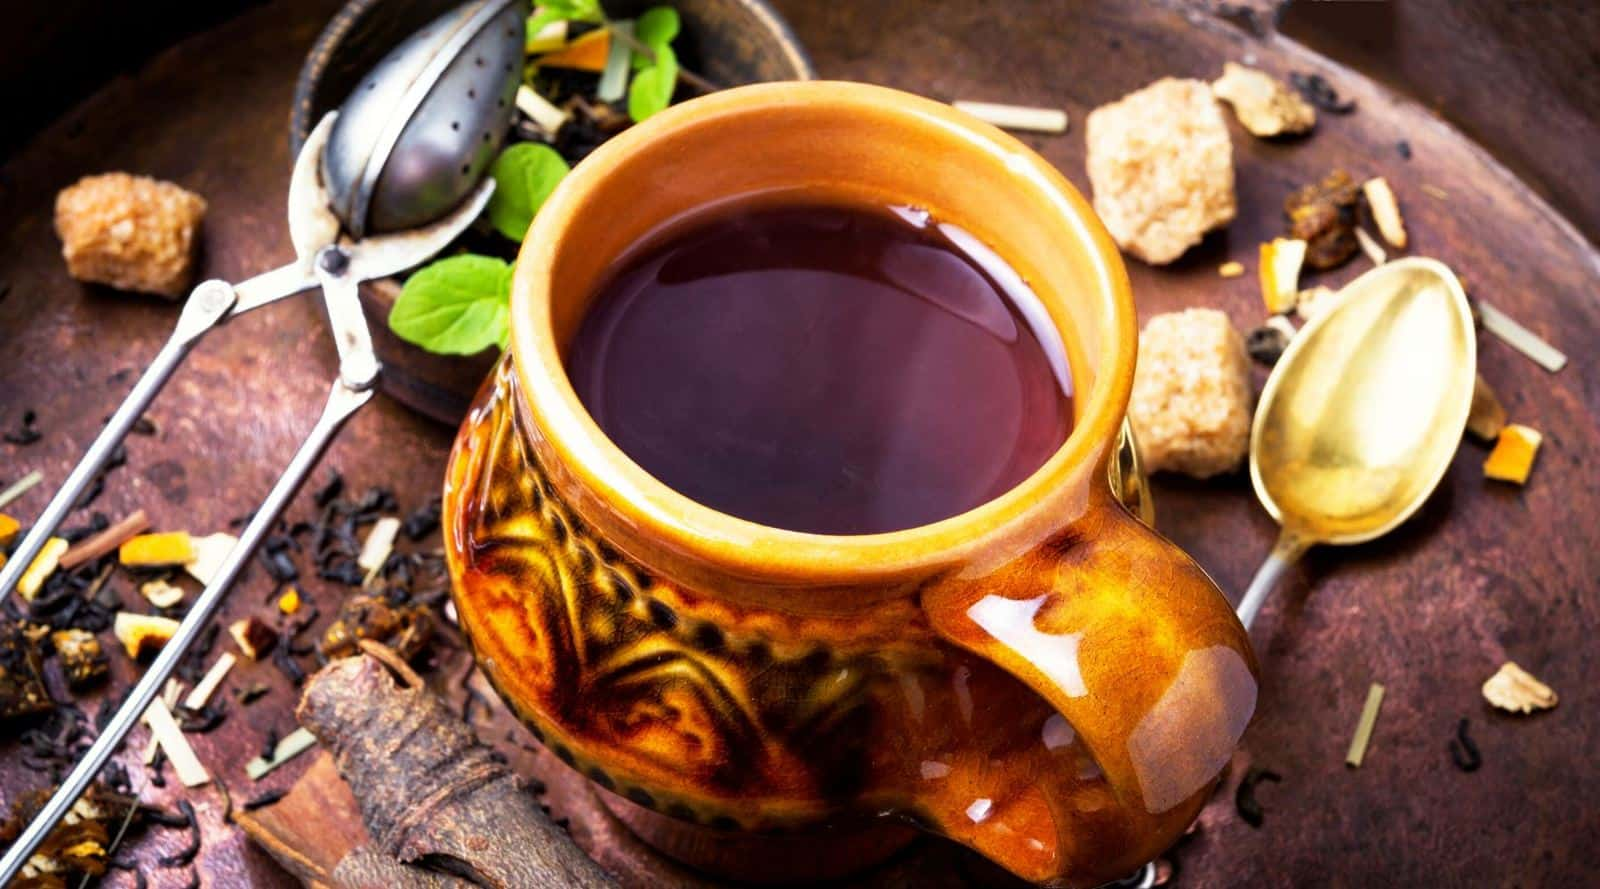 why some teas are darker than others?